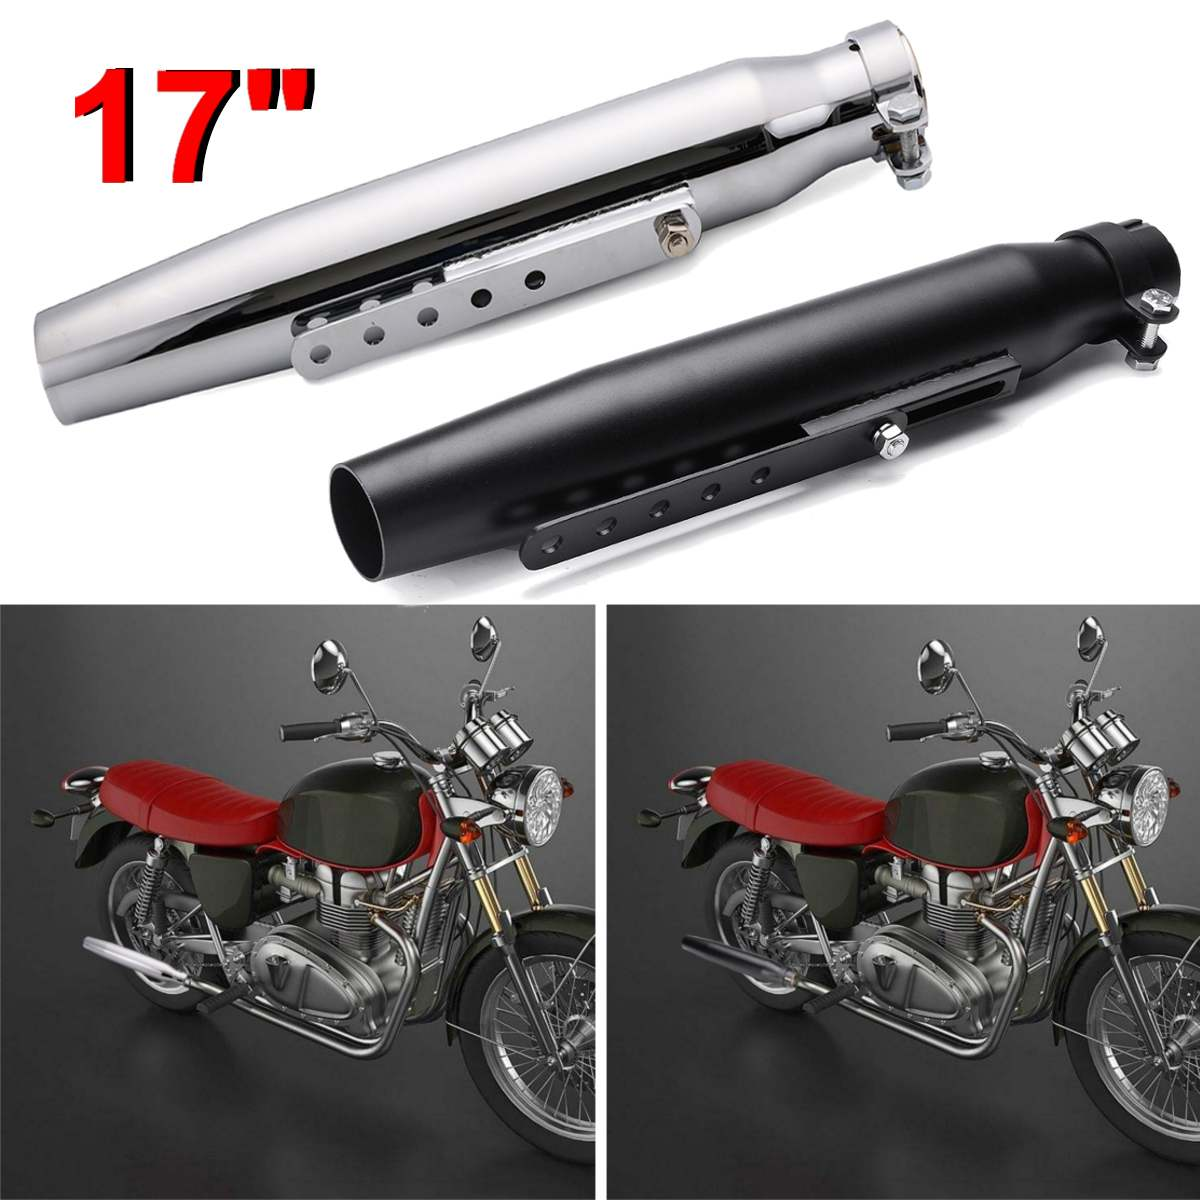 Universal Motorcycle Exhaust Pipe Muffler Exhaust Tip Tail Pipe Tube For Harley Cafe Racer Bobber